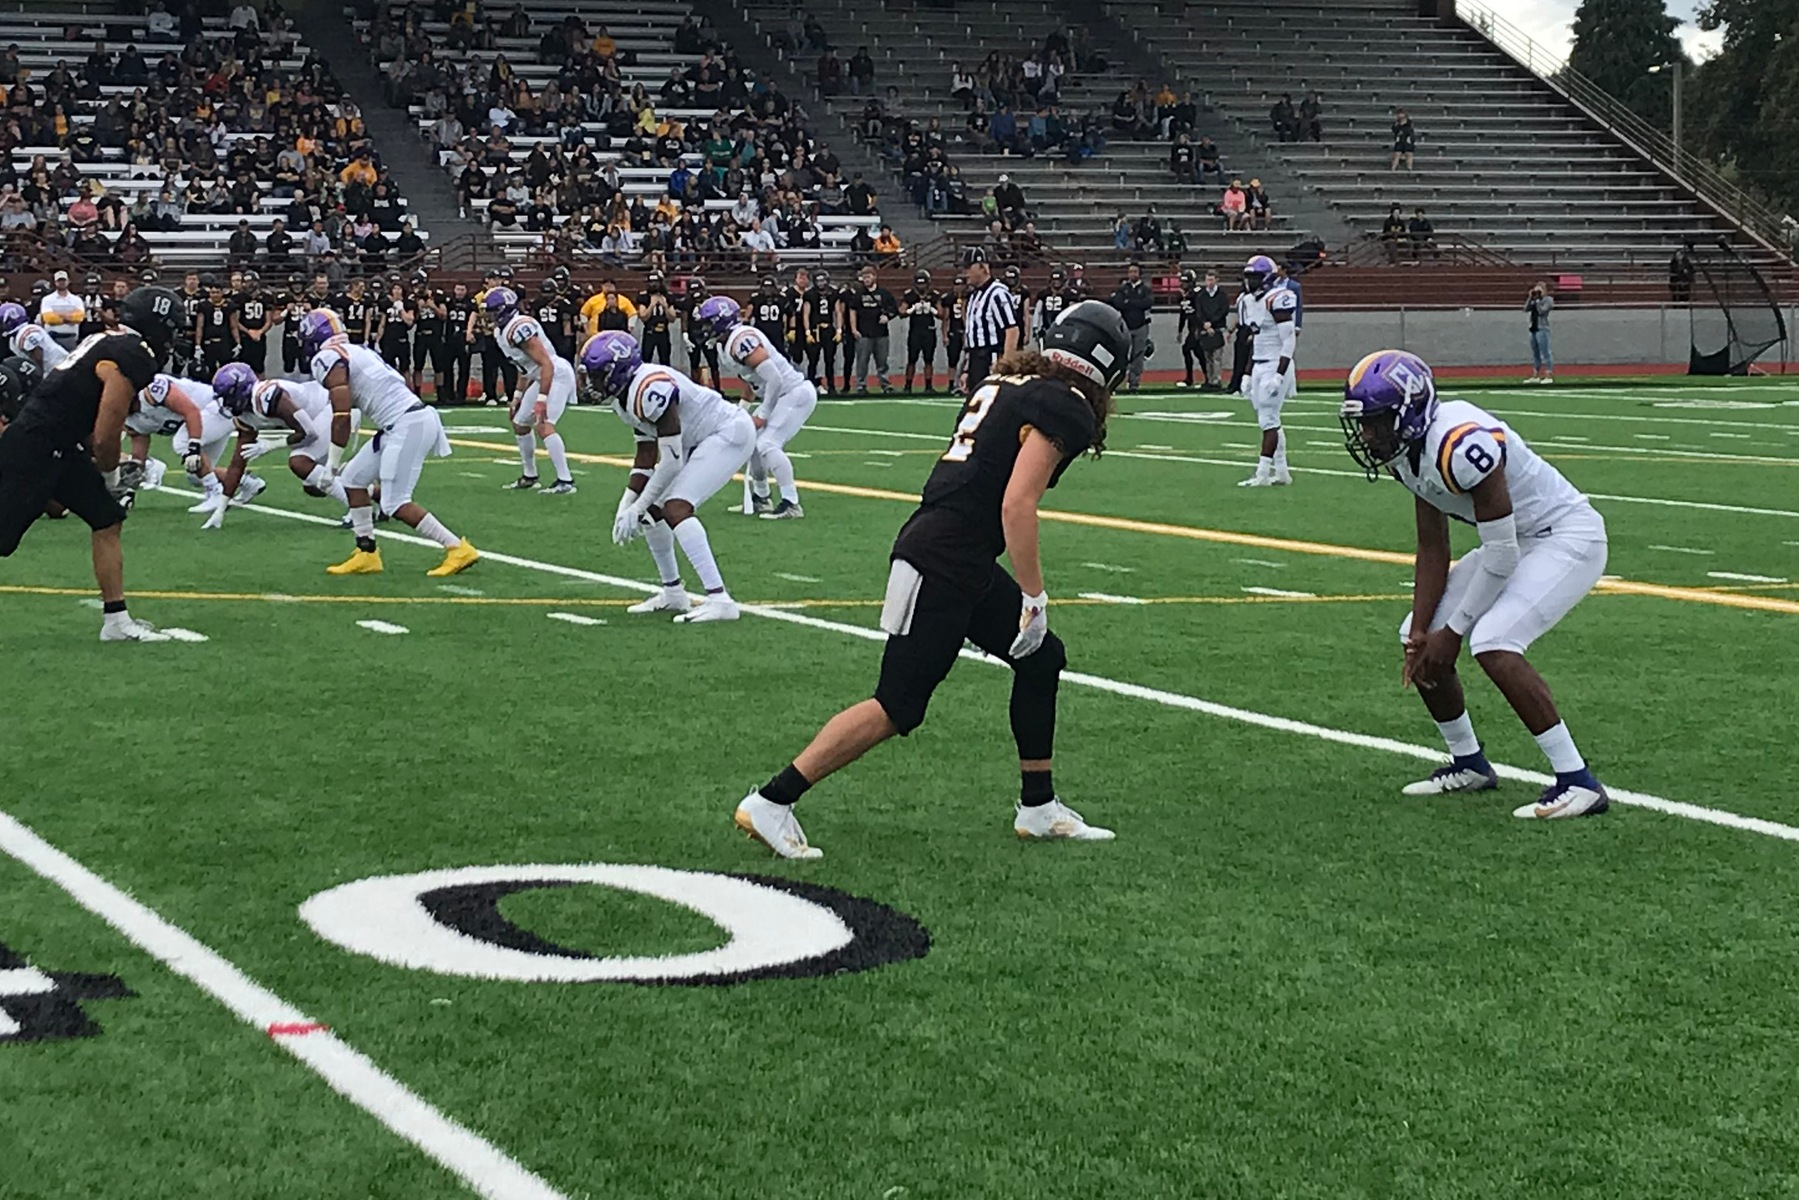 Turnovers Hinder Kingsmen Football in Season Opener